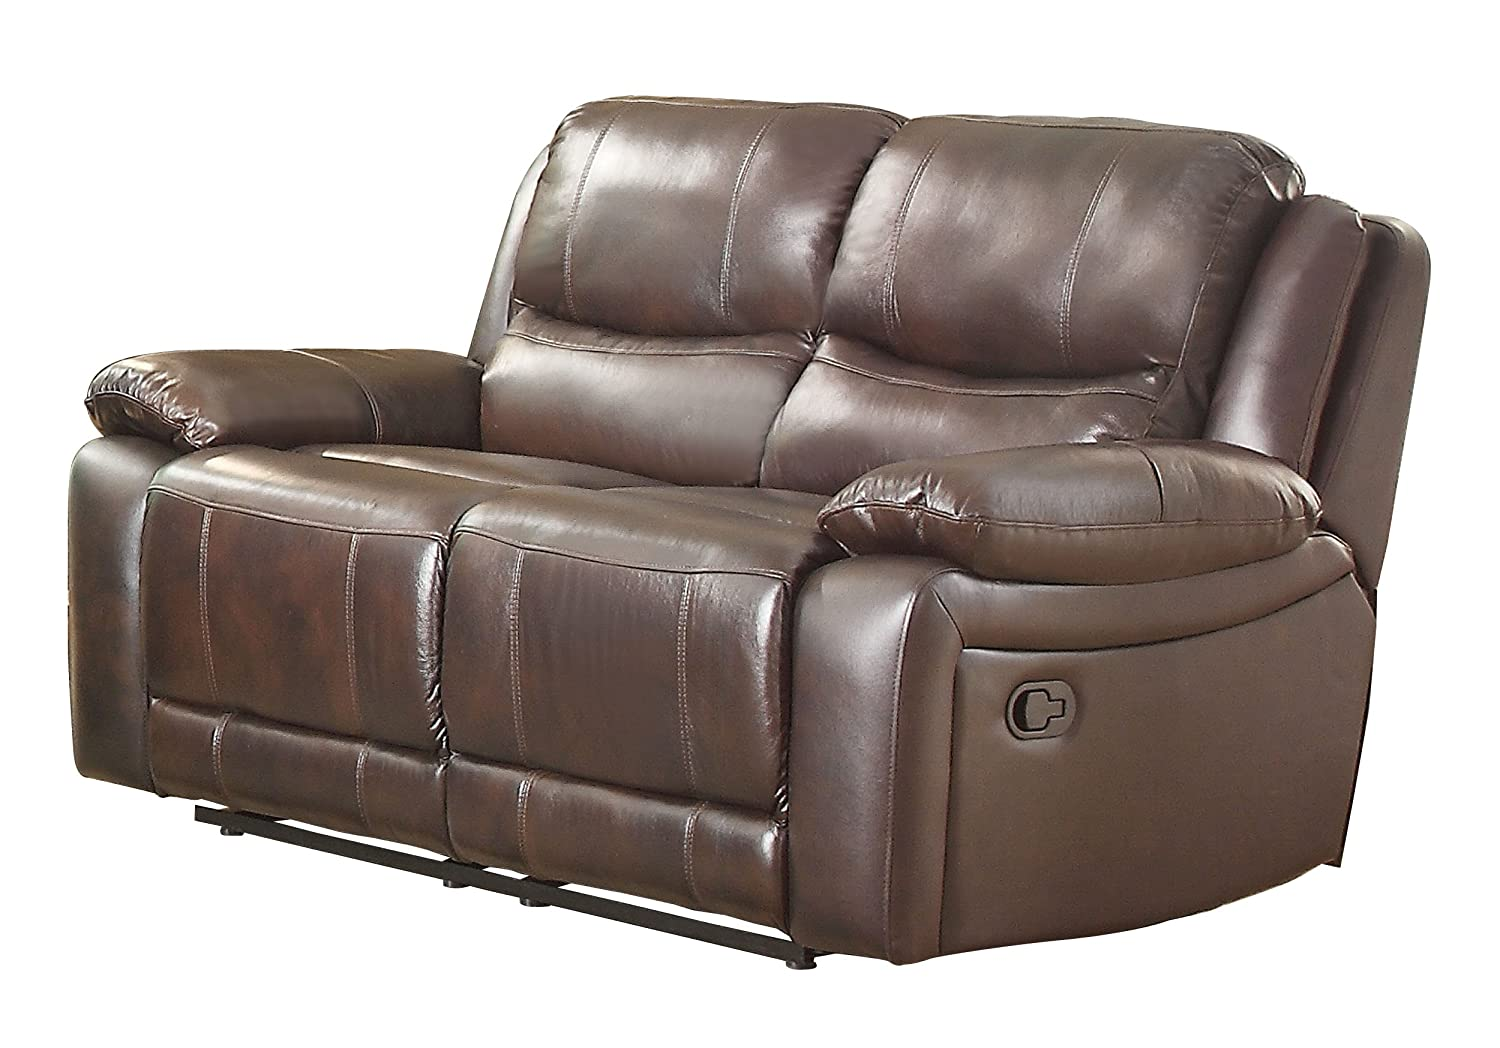 Homelegance Double Genuine Leather Dark Brown Reclining Loveseat